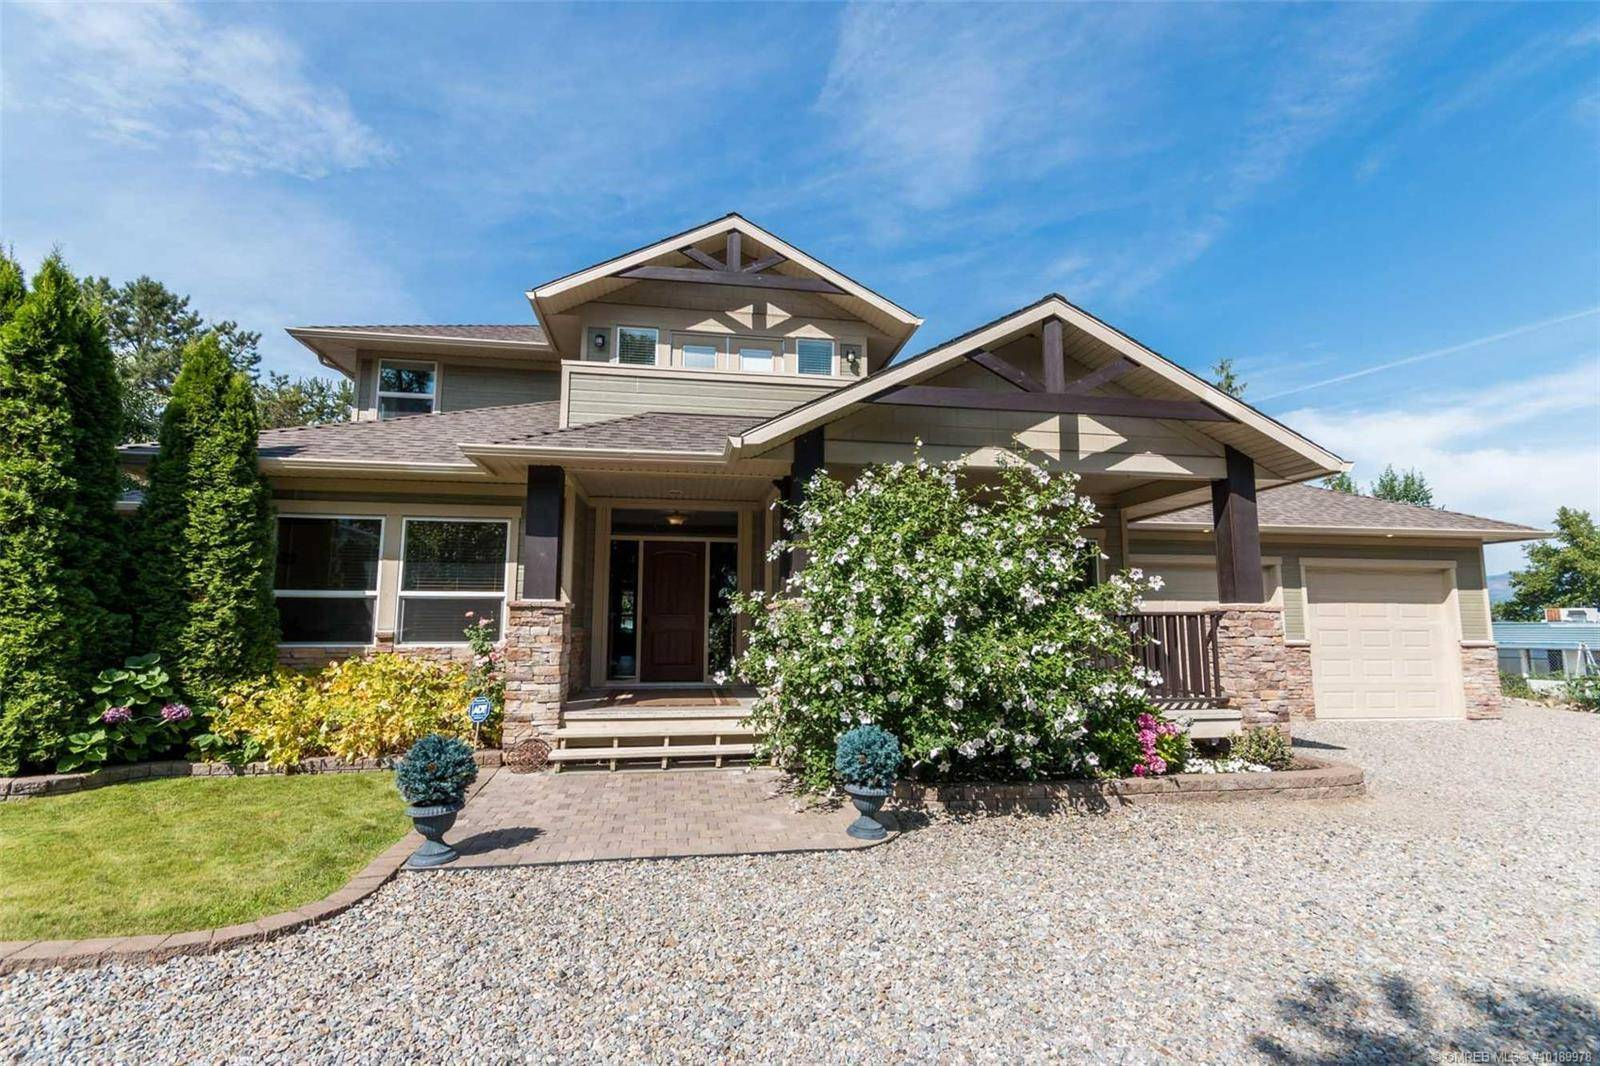 House for sale at 4588 Raymer Rd Kelowna British Columbia - MLS: 10189978